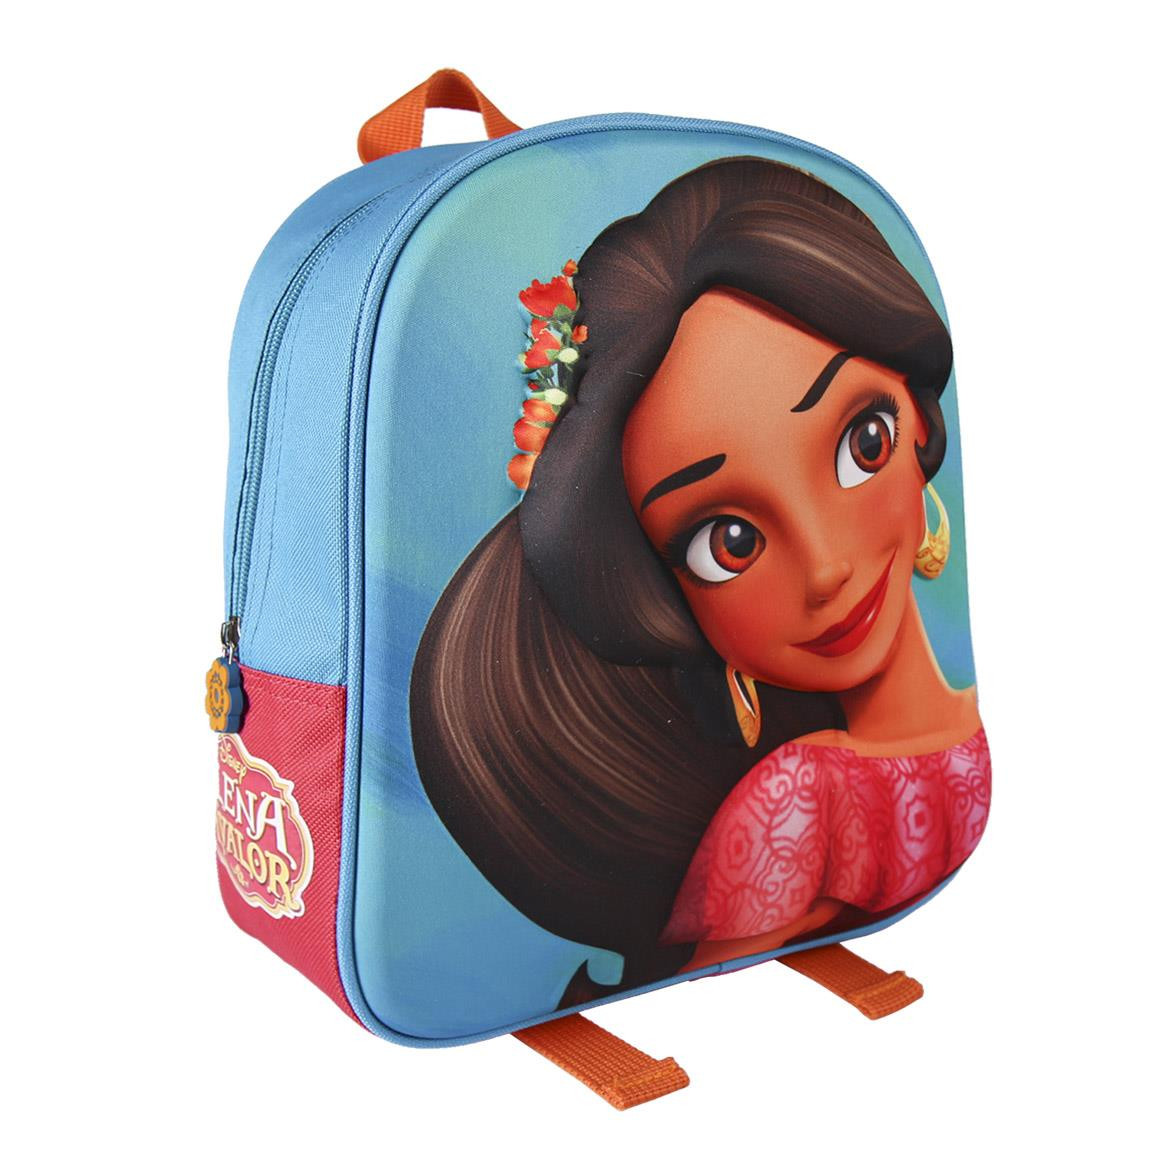 Backpack infatil comfortable and practiced decorated with artwork of Ellen Aworth - Home and More